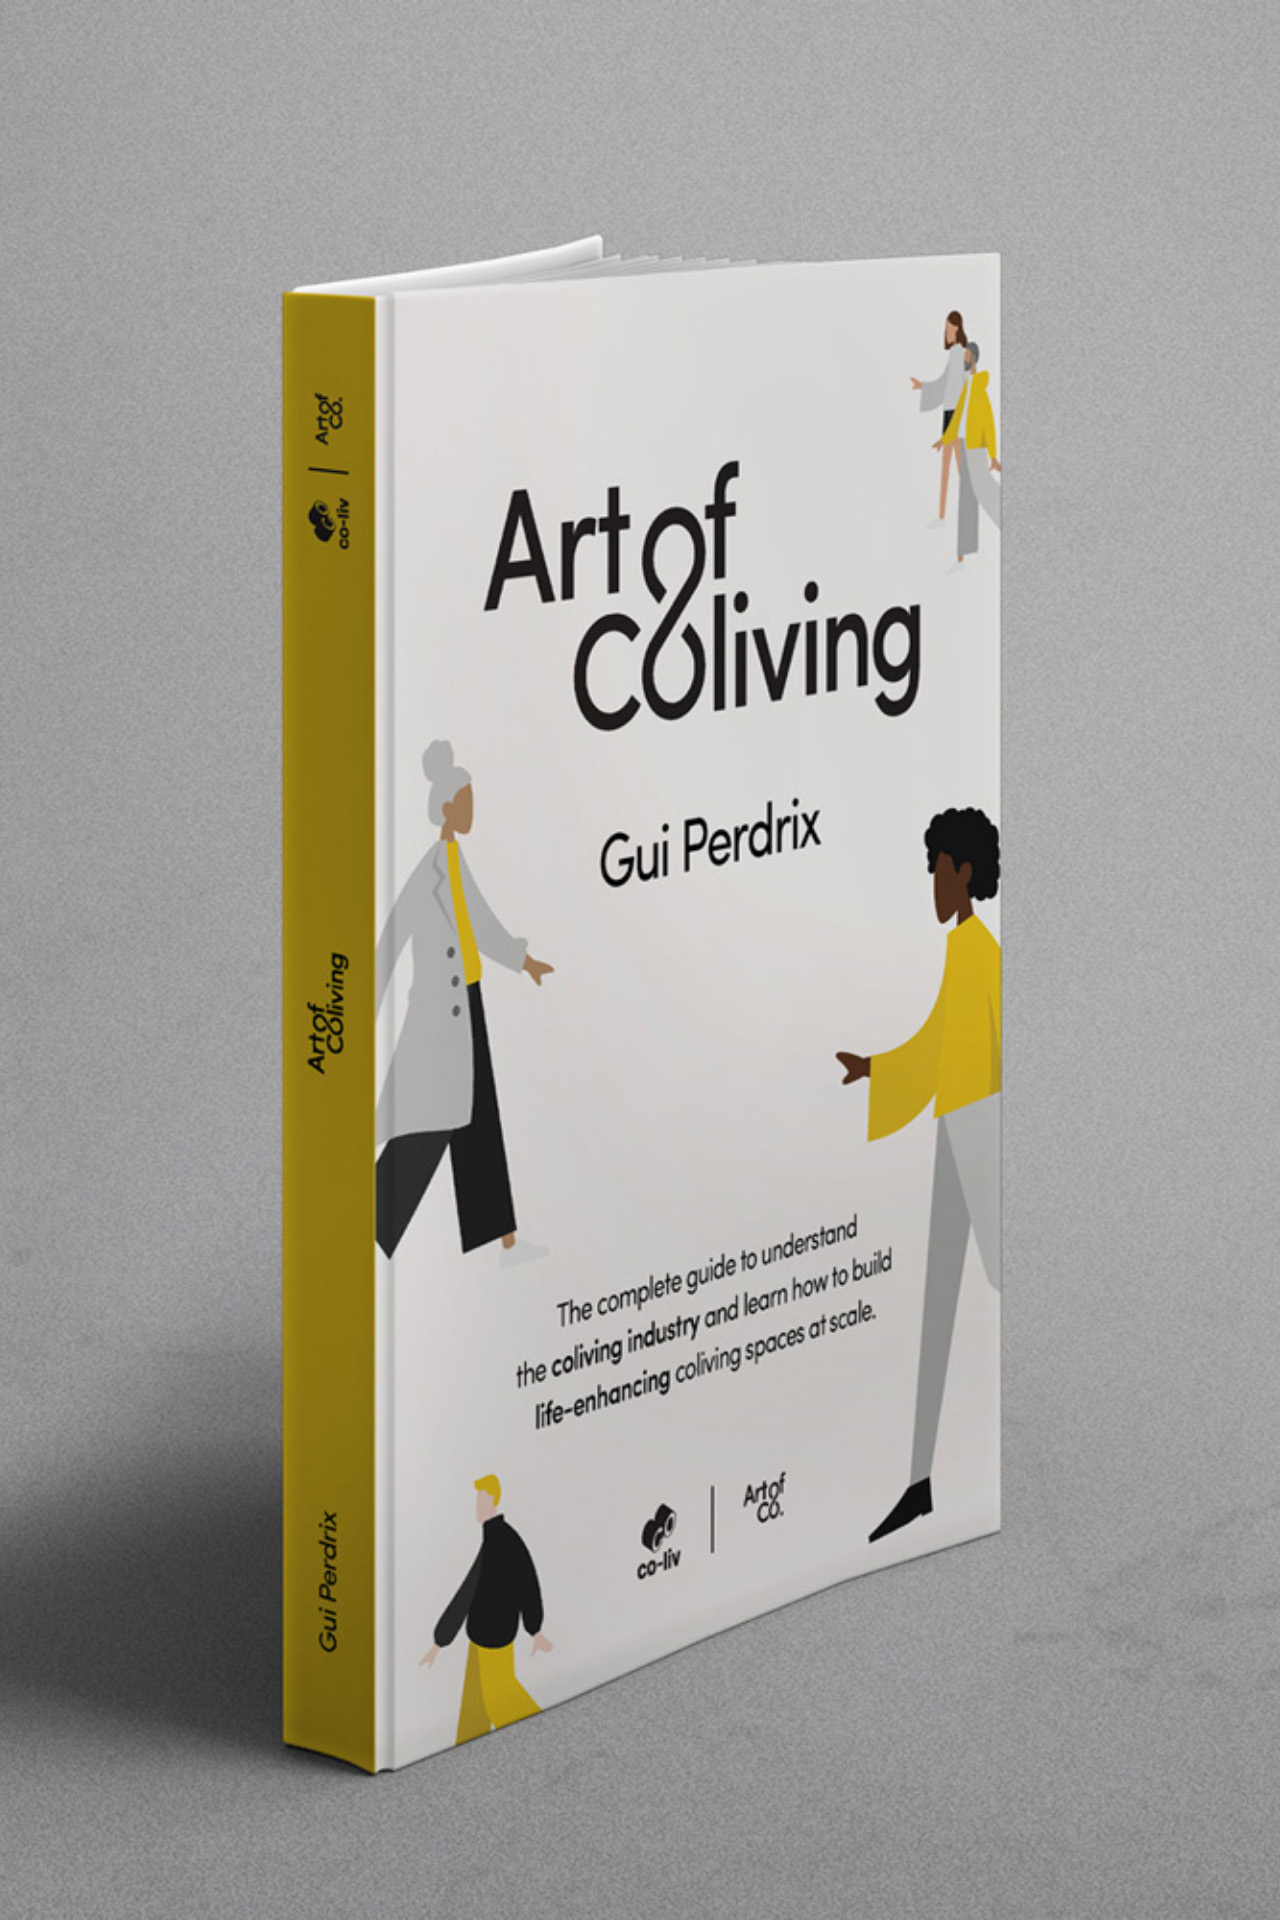 Art of Coliving by Gui Perdrix book front cover design by SPX Agency